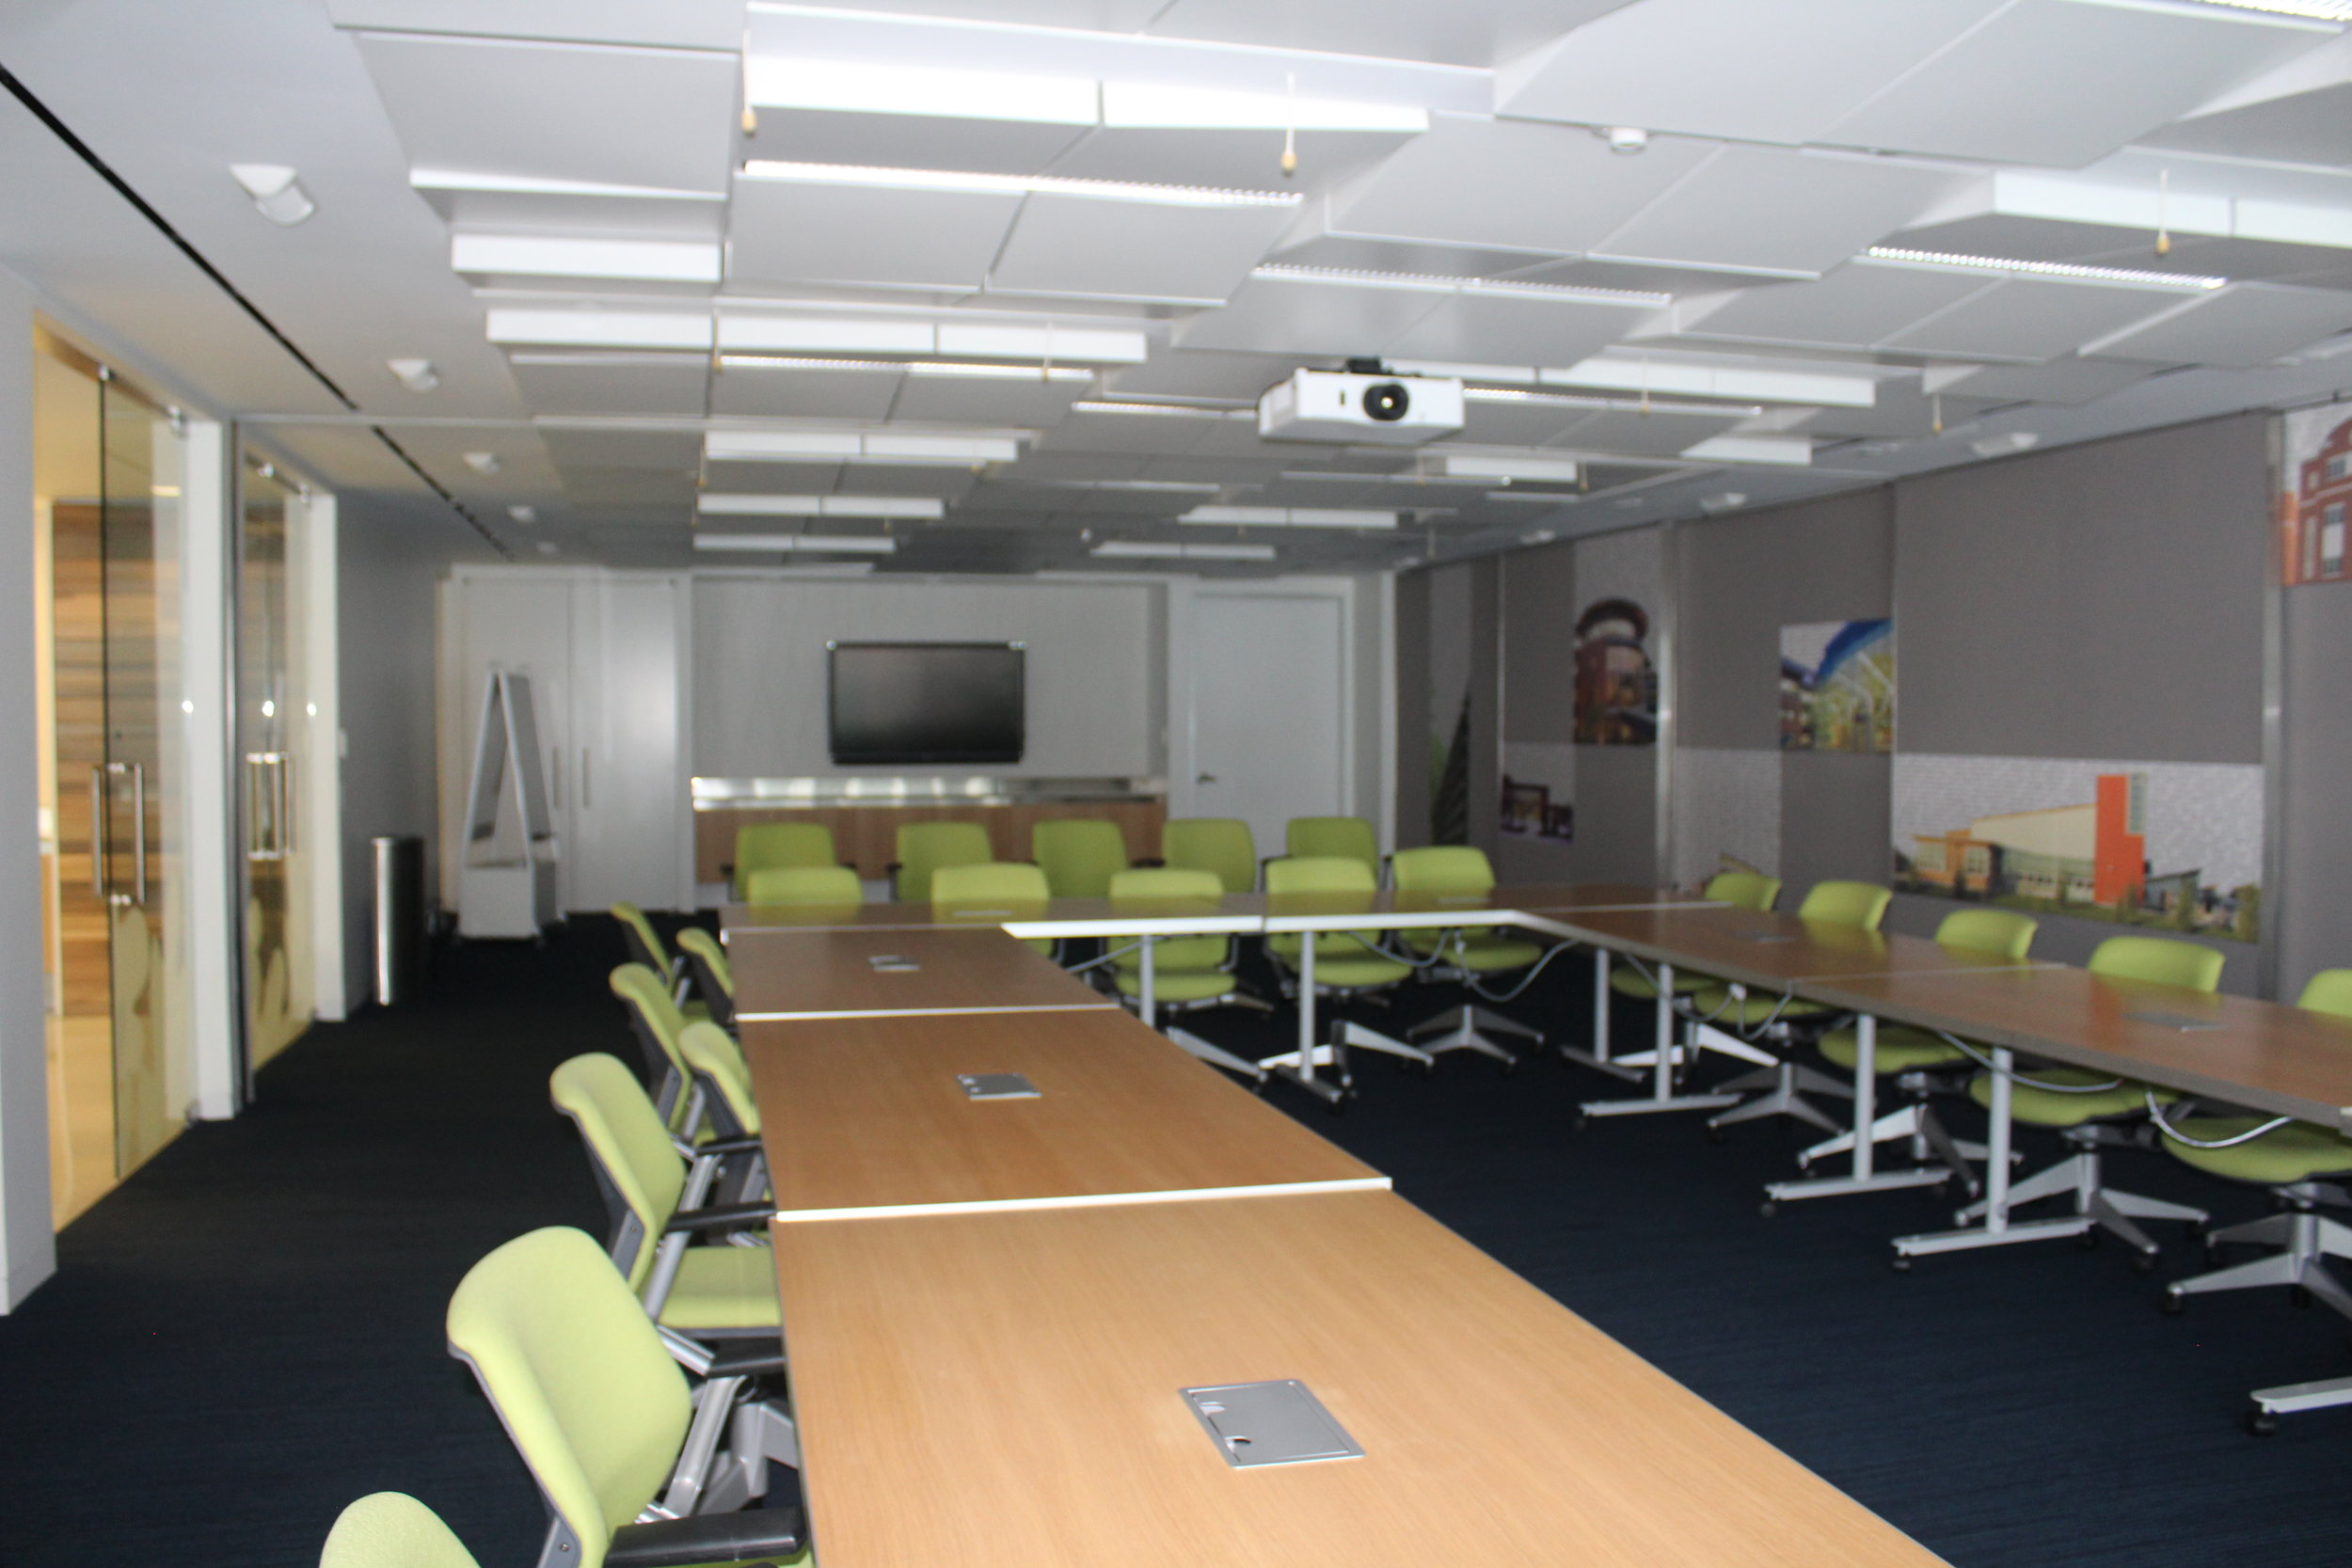 The boardroom is host to many exciting international meetings. In fact, even when we visited, representatives from Shanghai had arrived to meet with USGBC staff. Fun facts: The space contains a demand controlled ventilation system, which adjusts outdoor air intake based on the CO2 of the occupants in the space, providing fresh air as needed. The metal ceiling is made of recycled aluminum and the modulations and perforated backing help with acoustics. By the way, furniture throughout the office is low-emitting, and/or contains recycled content.